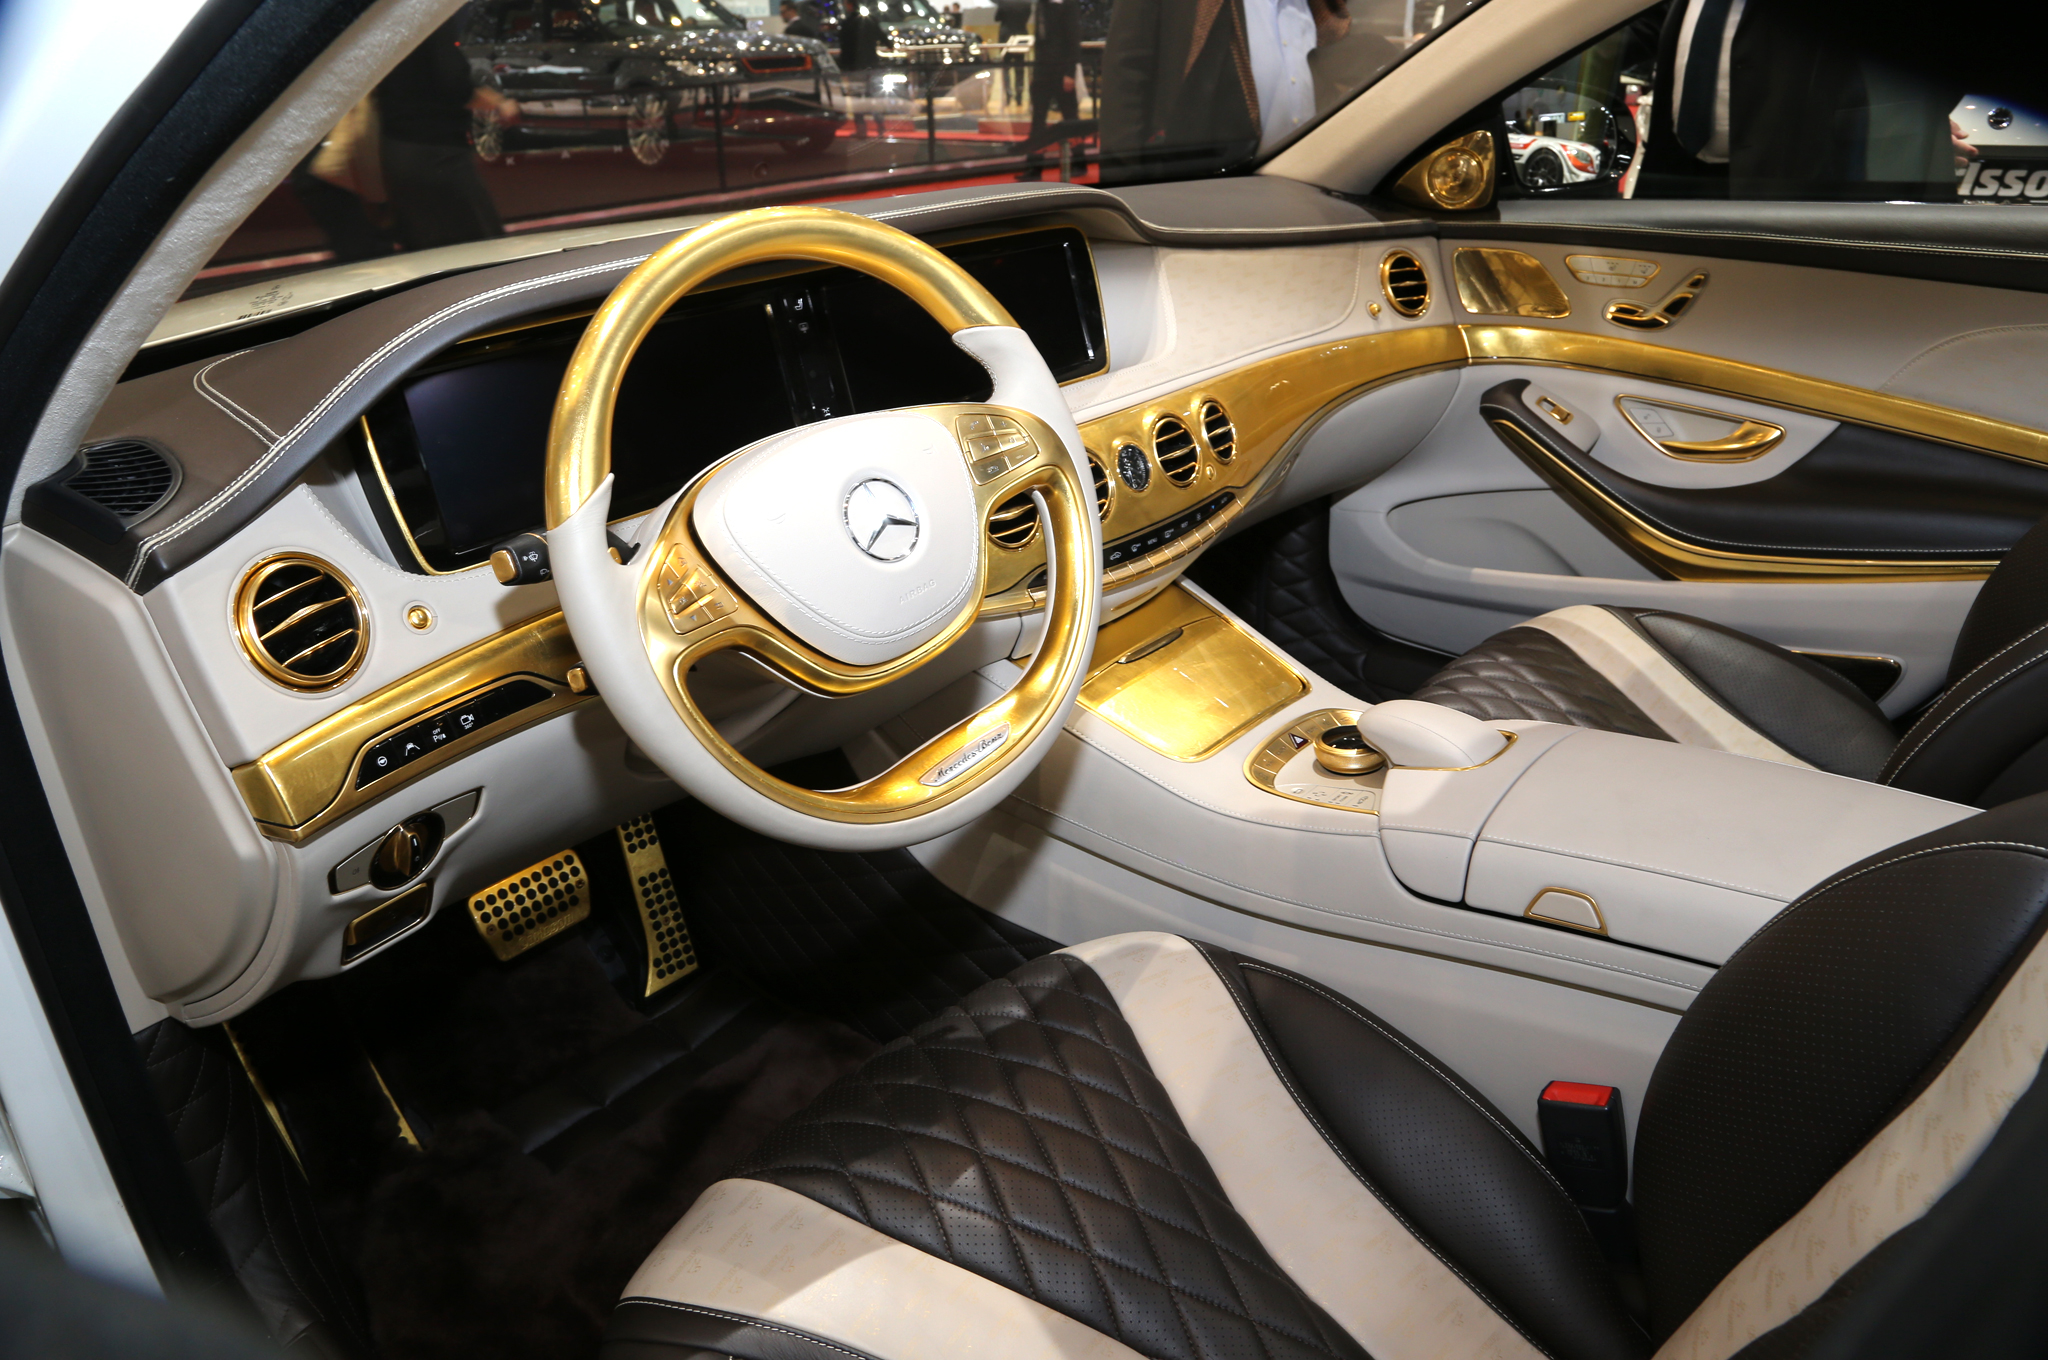 true luxury the carlsson cs50 versailles edition 1 out of 25the carlsson cs50 versailles edition 1 out of 25 produced this s class based mercedes will cost you between \u20ac268,000 and \u20ac395,000 (equal to us$370,100